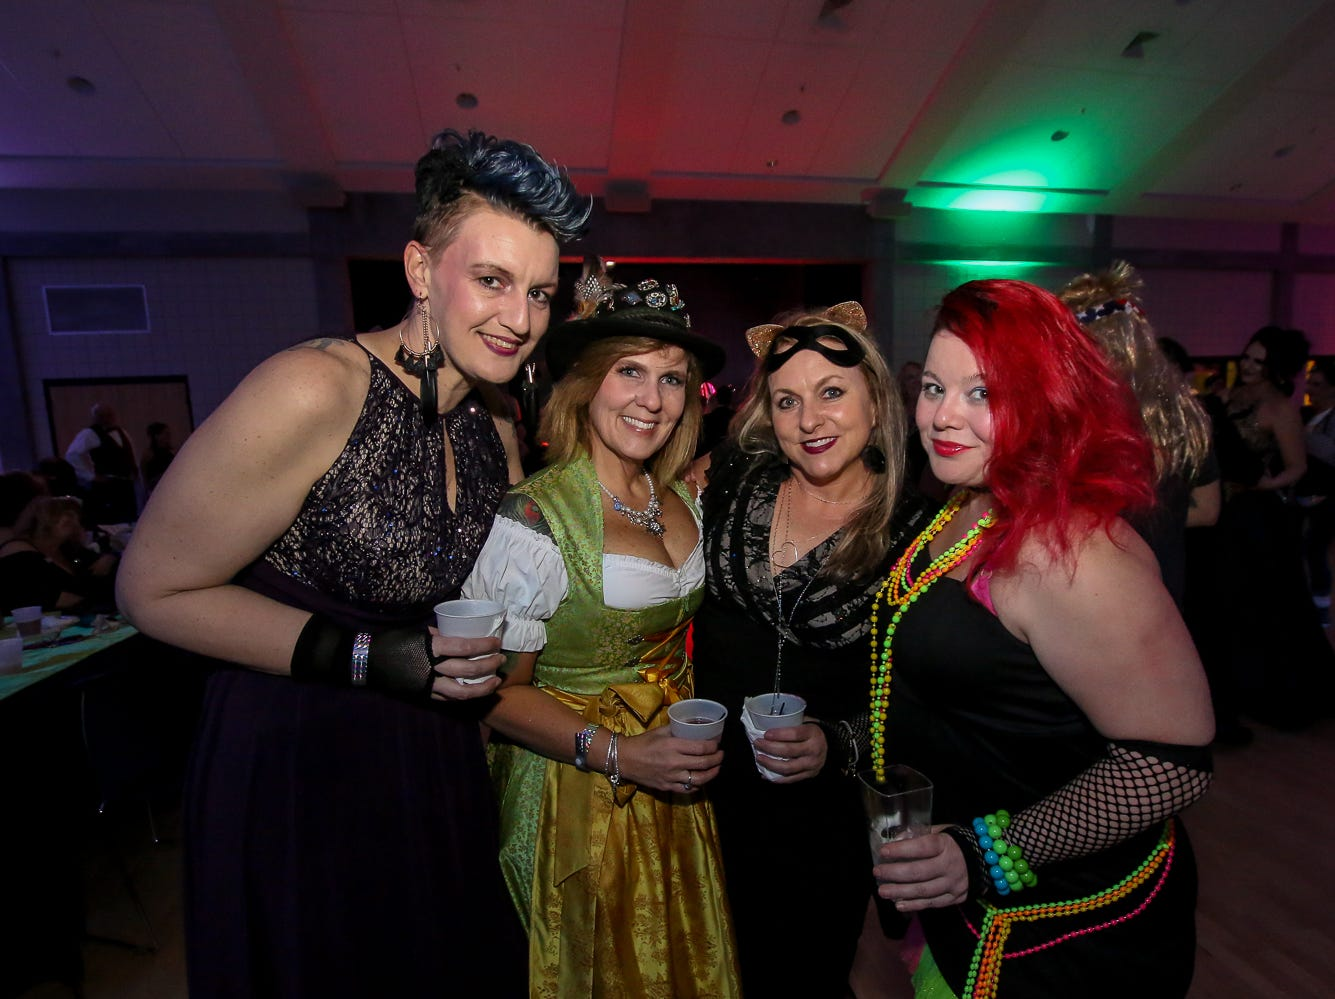 Featuring music by Raised-On-The-Radio, the Mystic Order of Revelry and the krewes of Brew, los Muertos, Cerveza, and Silver Slipper hosted thier 3rd annual Joint Mardi Gras Ball at the Sanders Beach-Corinne Jones Resource Center on Friday, February 1, 2019.